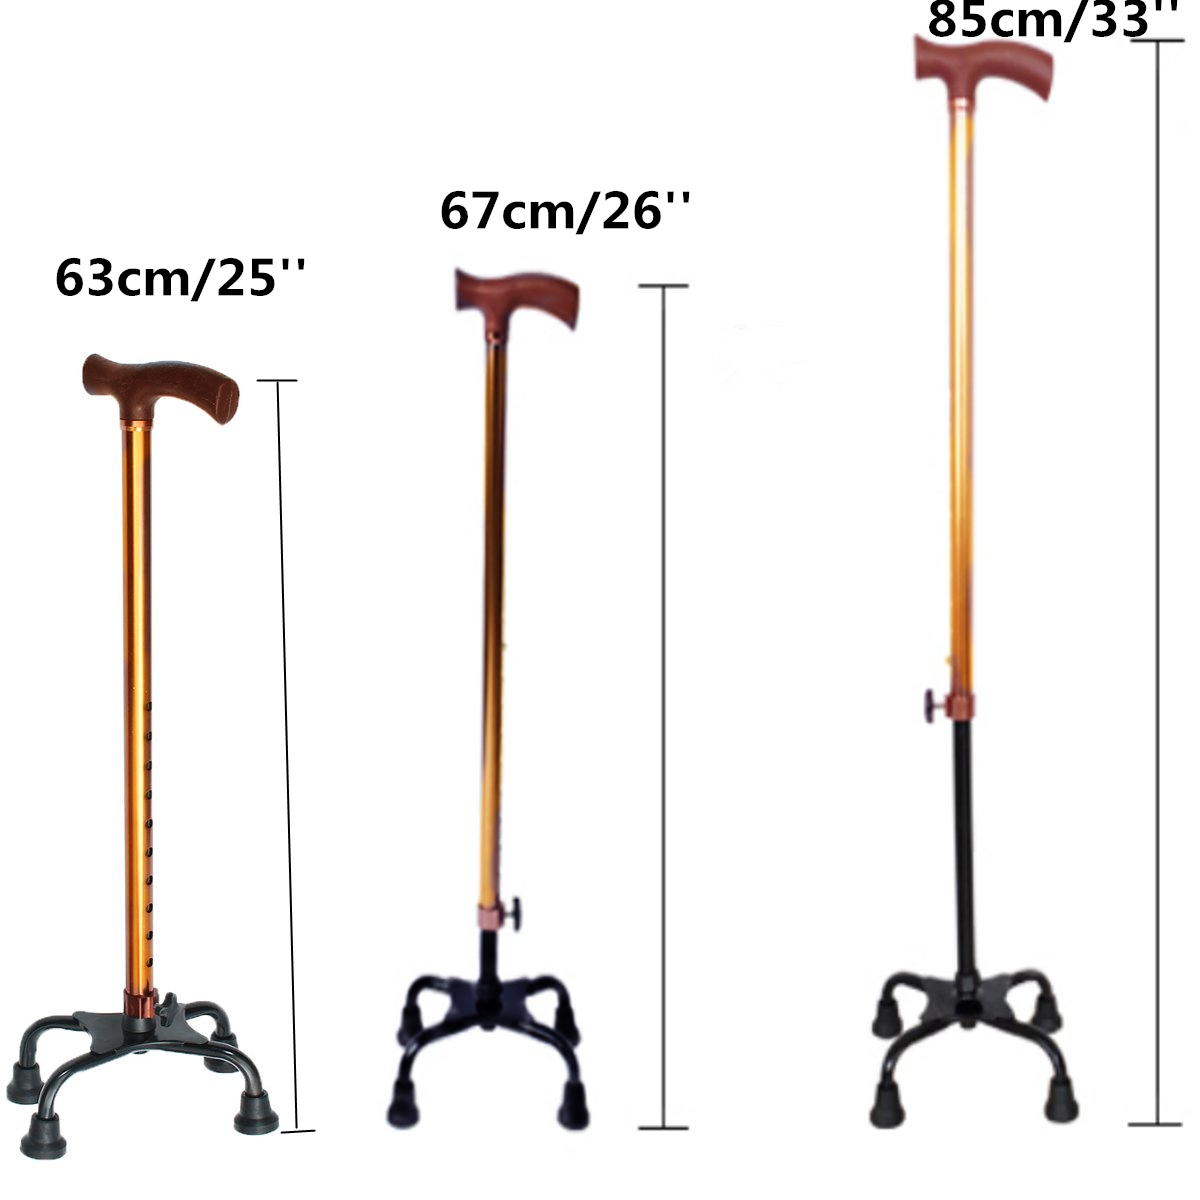 Aluminium Safety Old Man Walking Stick Telescopic Canes 4 Heads Legs Crutch T Handle Hiking Elderly Walk Gift For Mother Father